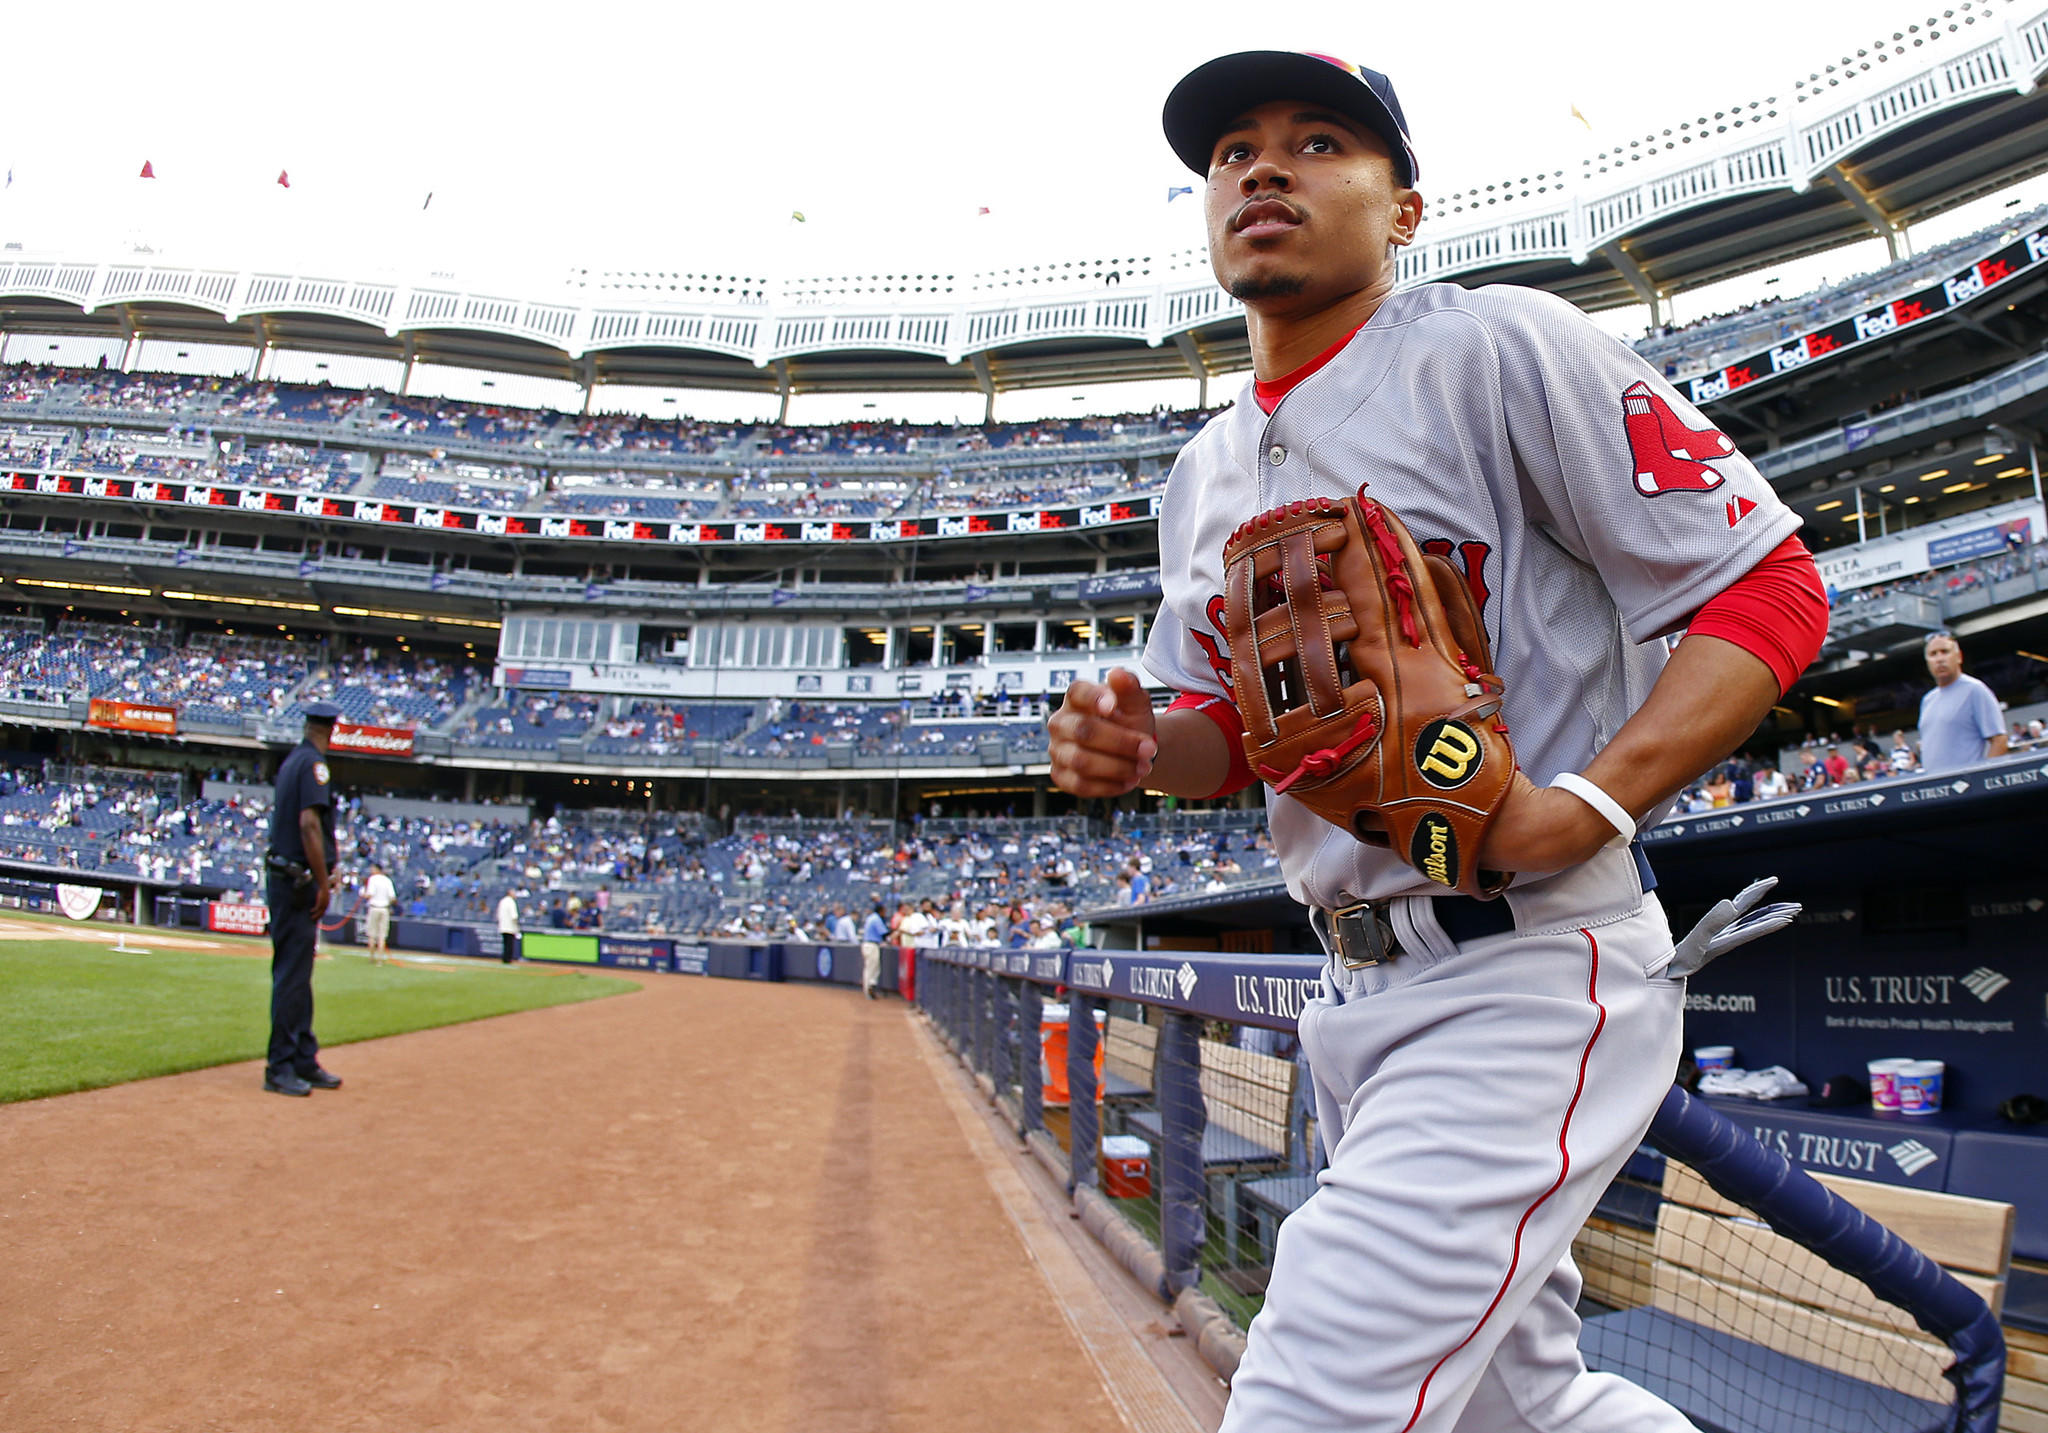 Mookie Betts takes the field for the Red Sox before the start of a game against the Yankees at Yankee Stadium on Saturday.